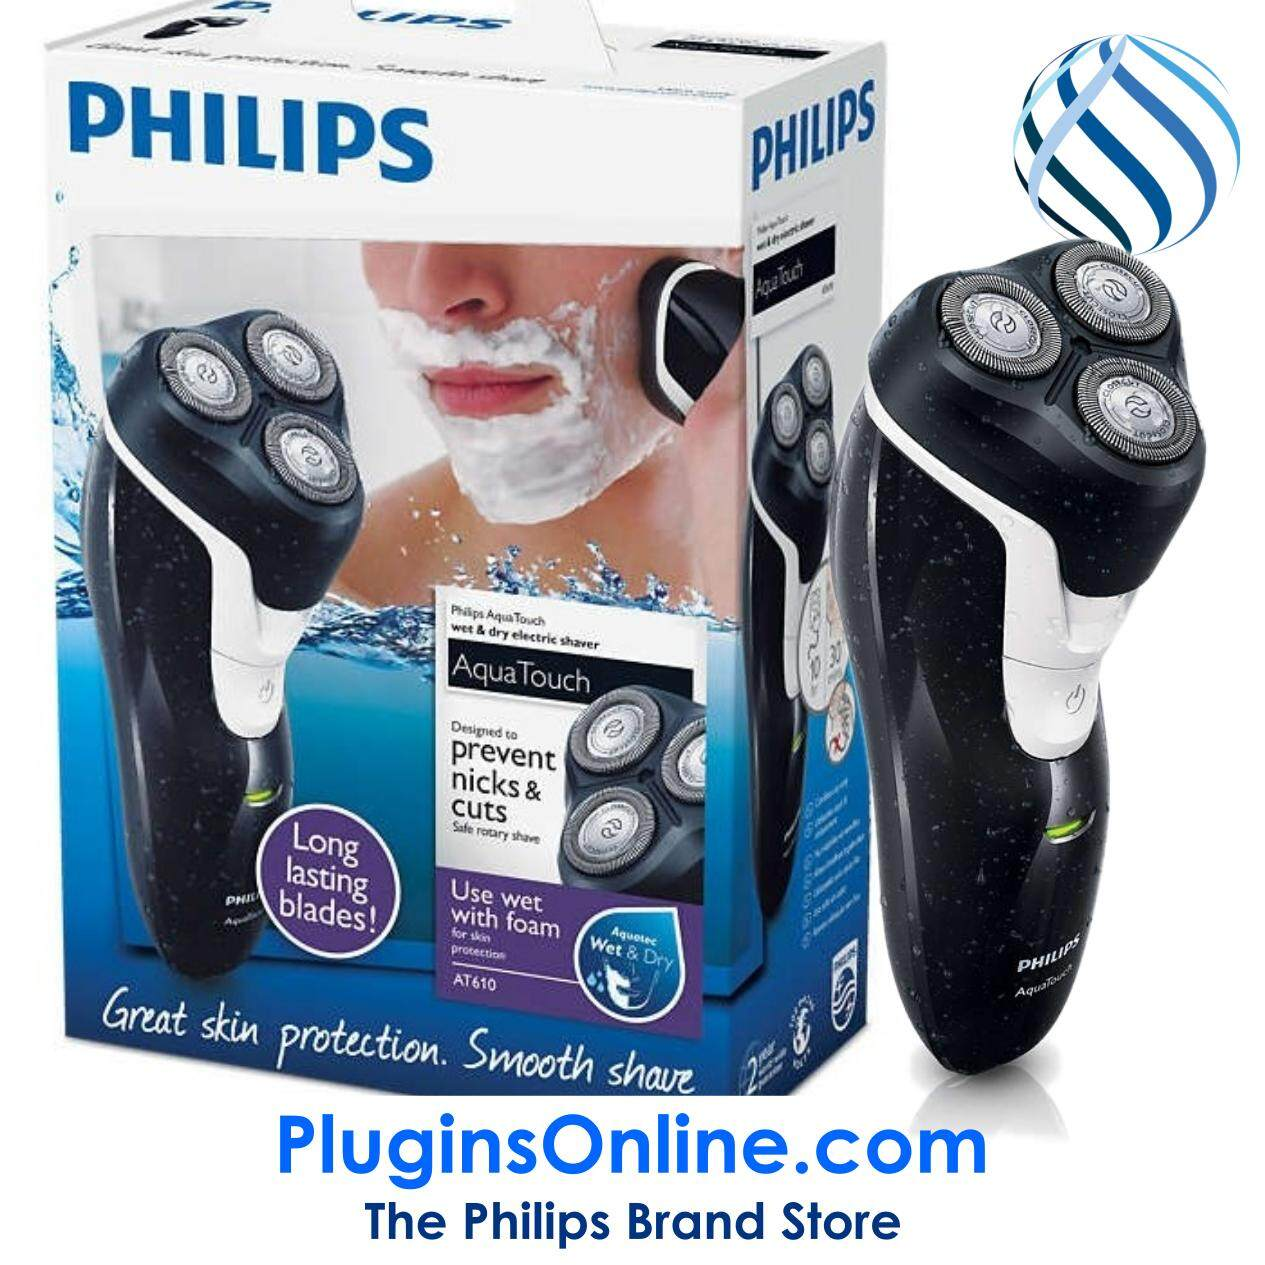 Philips Shaving Grooming Price In Malaysia Best Electric Shaver Pq206 At610 14 Aquatouch 100 Waterproof Wet Dry